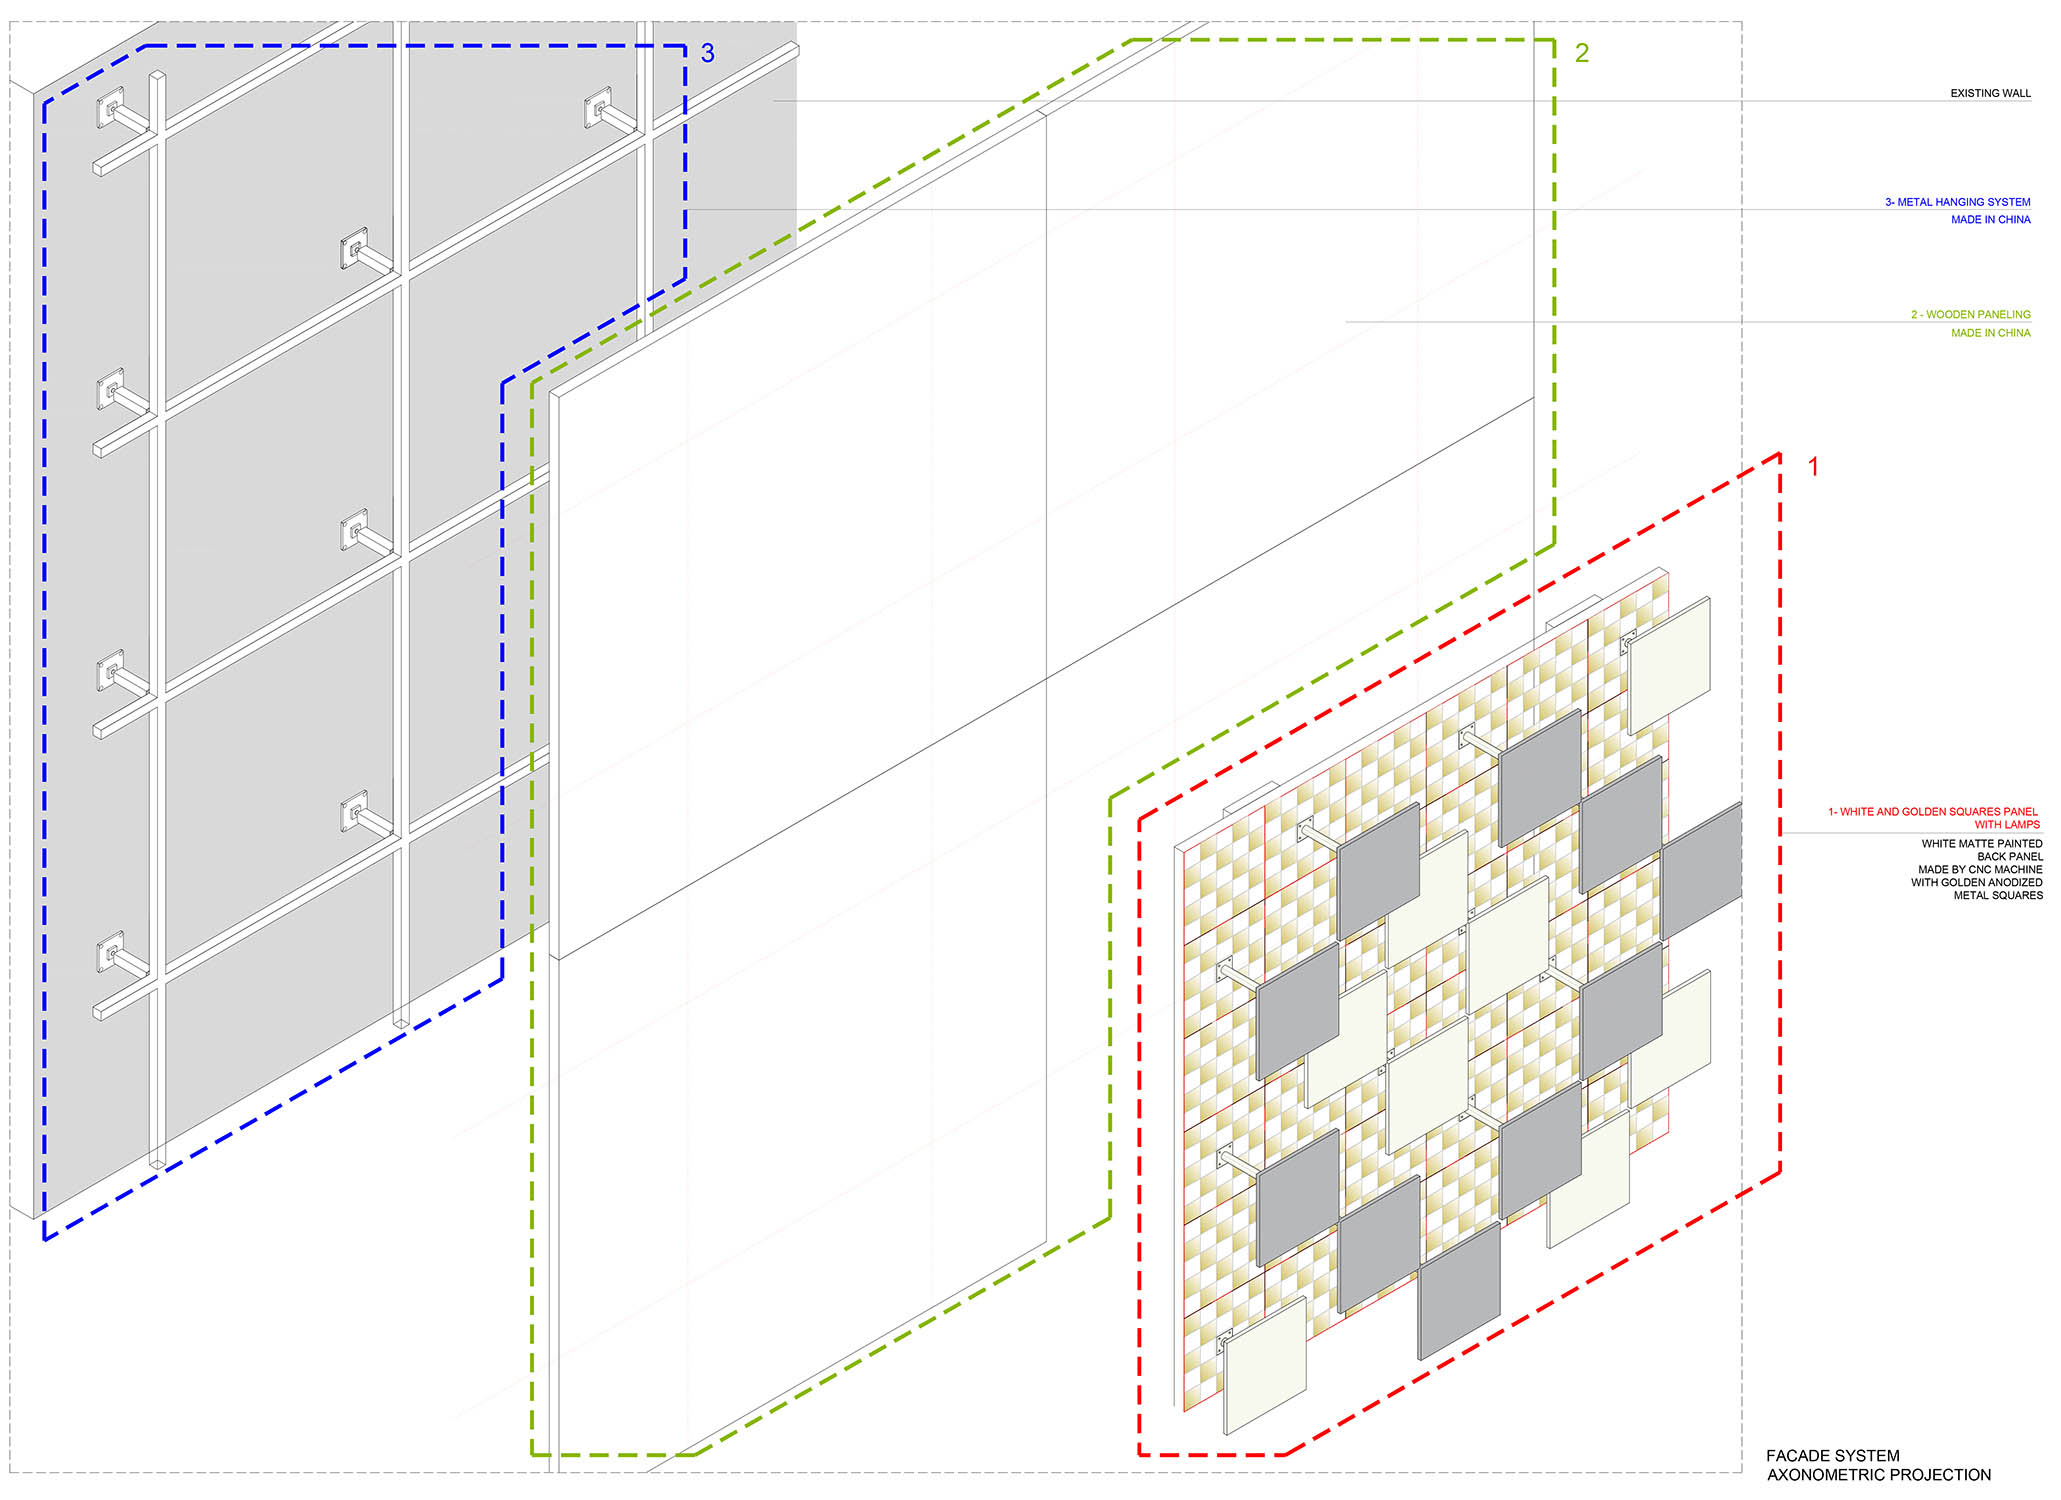 Facade system axonometric projection Cristofori Santi Architetti}